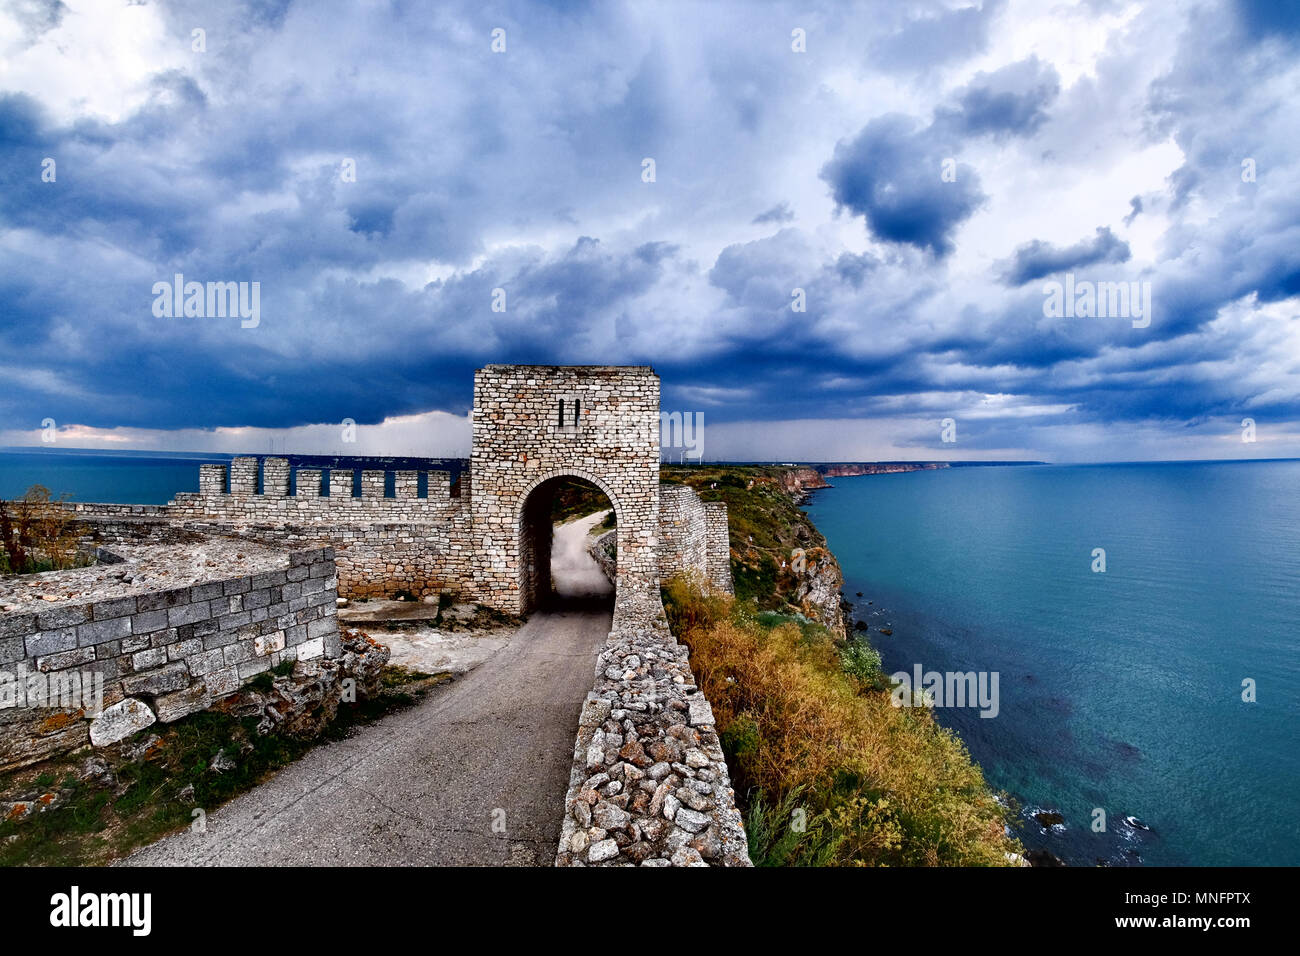 Cape Kaliakra fortress, Bulgaria, dramatic storm comming at Black Sea. Old abandoned fortress by the sea. Important trousitic attraction. - Stock Image